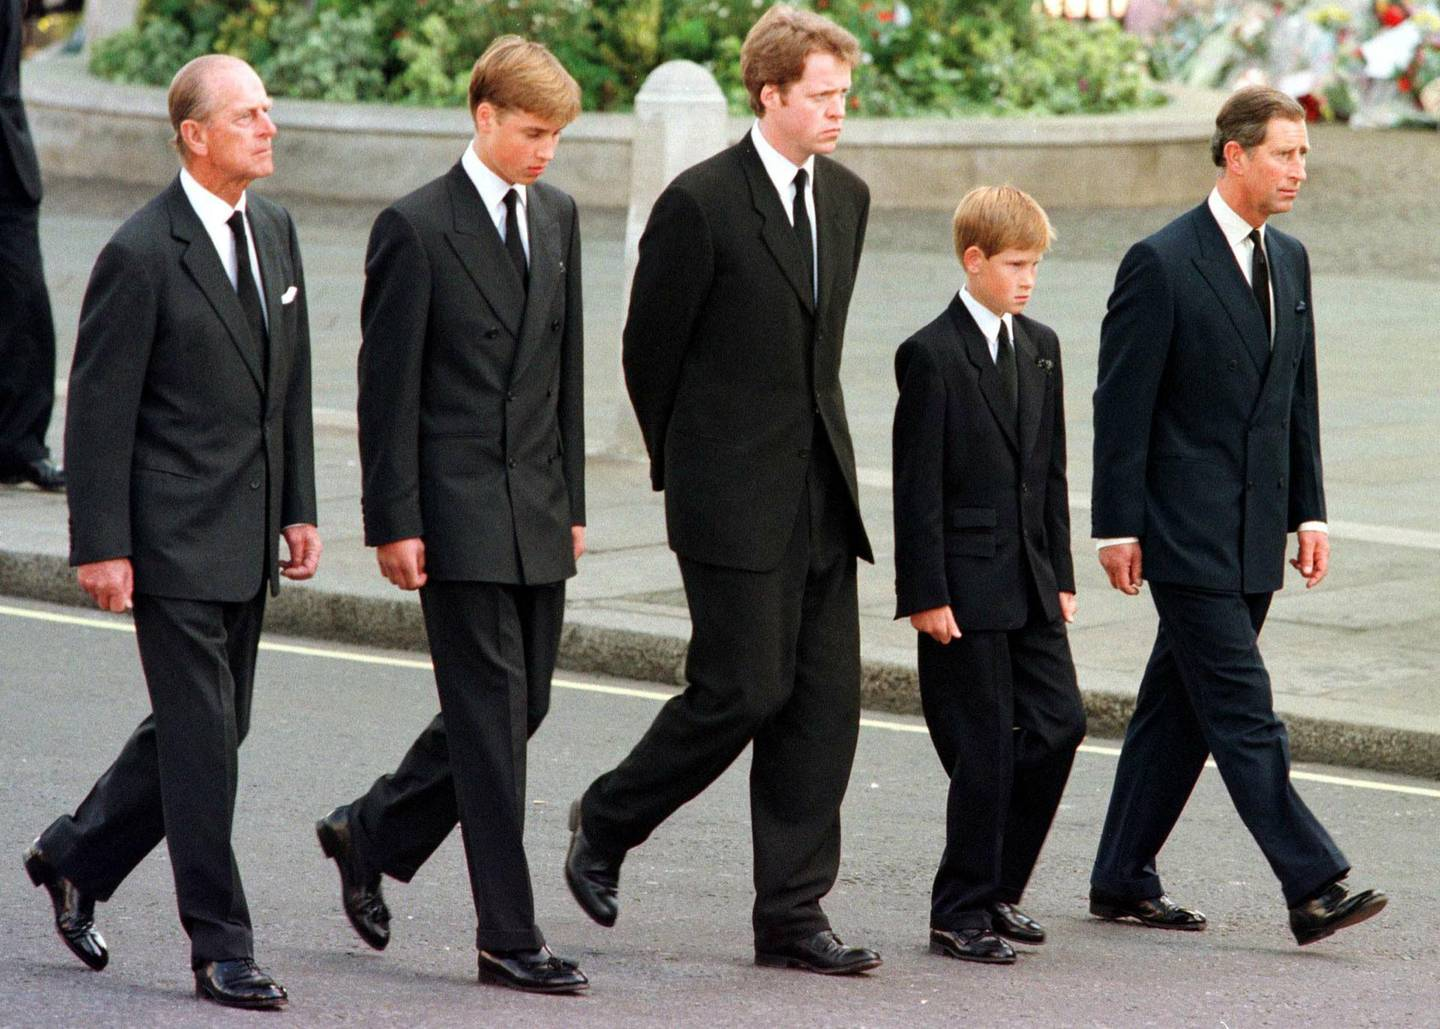 """(FILES) In this file photo taken on September 06, 1997 (L-R) Britain's Prince Philip, Duke of Edinburgh, Britain's Prince William, Earl Spencer, Britain's Prince Harry and Britain's Prince Charles, Prince of Wales follow the coffin of Diana, Princess of Wales, to Westminster Abbey in London for her funeral service.   Princes William and Harry hit out at the BBC and journalist Martin Bashir over """"the deceitful way"""" Bashir obtained his explosive TV interview with Princess Diana, their late mother, in which she detailed her troubled marriage to Prince Charles. / AFP / POOL / JEFF J MITCHELL"""